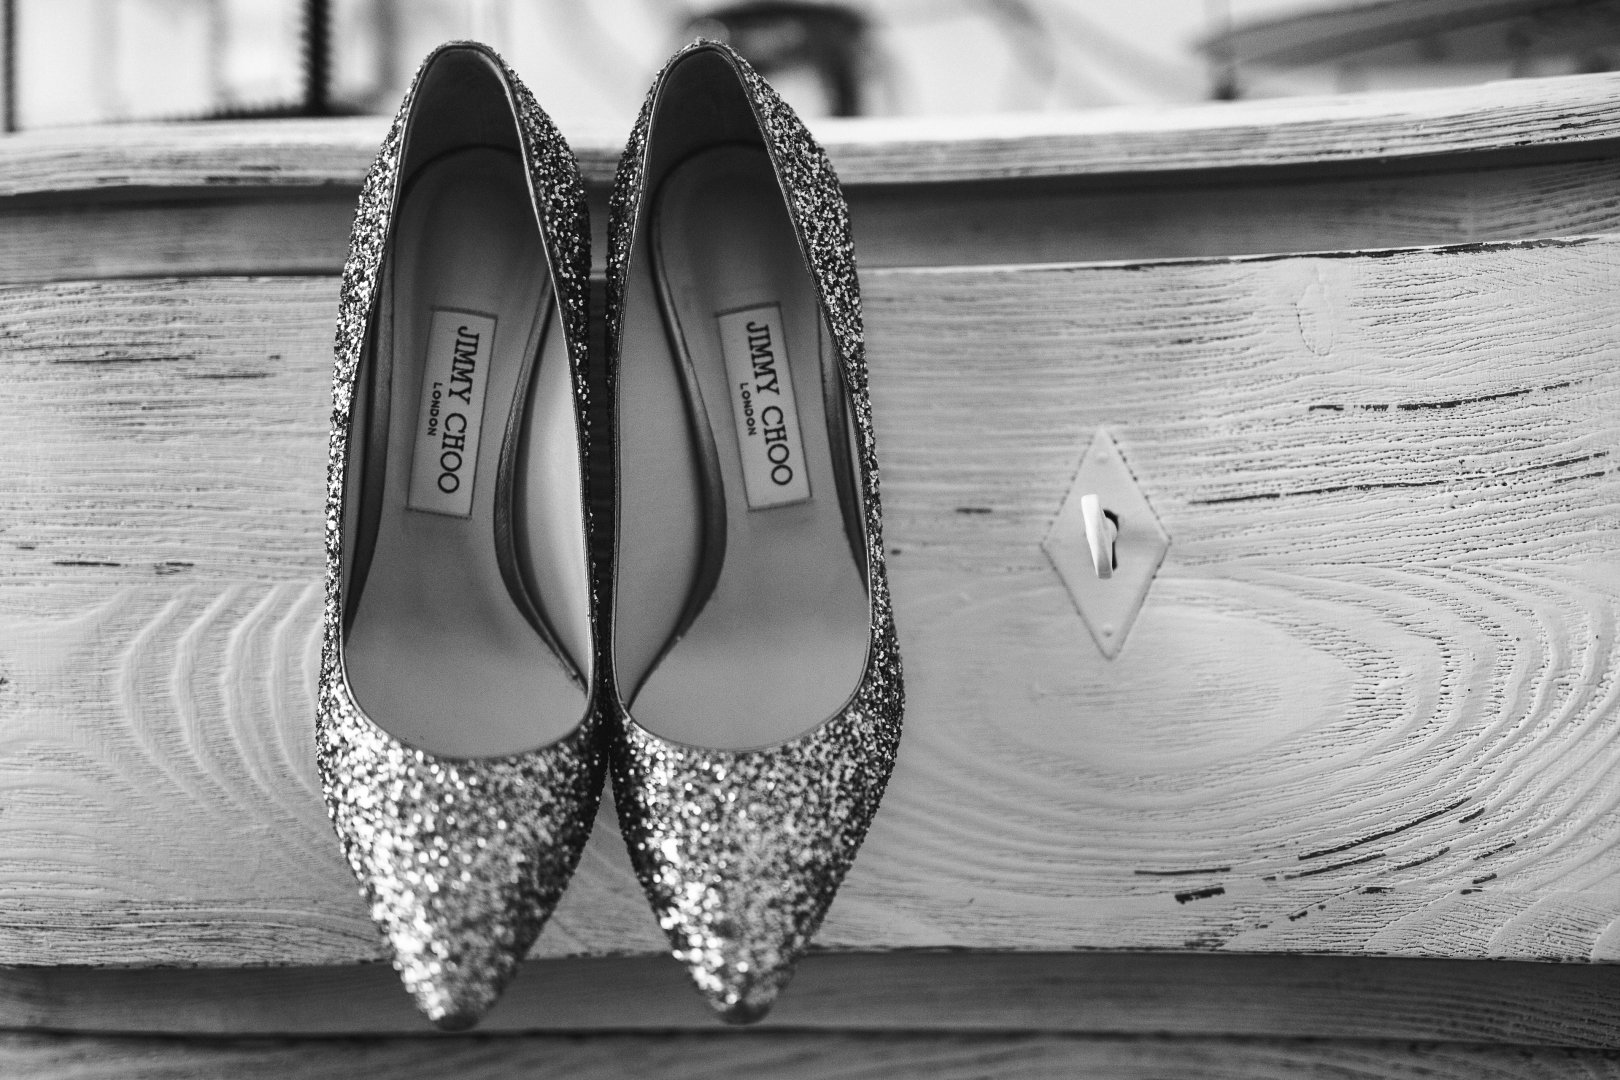 Footwear White Photograph Black Shoe Black-and-white Monochrome Monochrome photography High heels Still life photography Leg Silver Ballet flat Photography Font Style Basic pump Court shoe Fashion accessory Metal